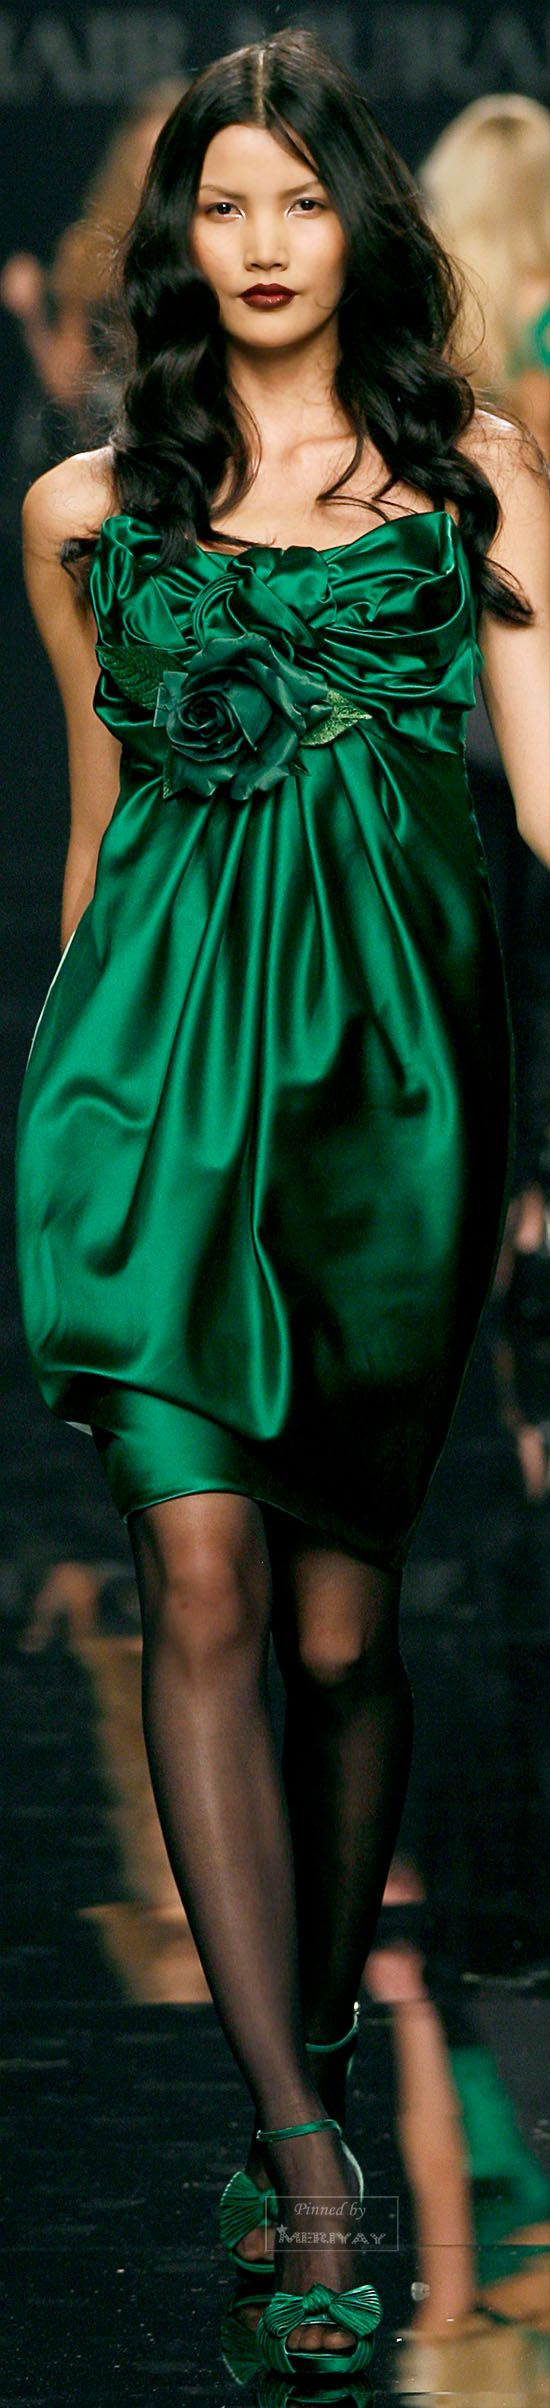 green wedding | green bridesmaids dresss | Zuhair Murad | The House of Beccaria#